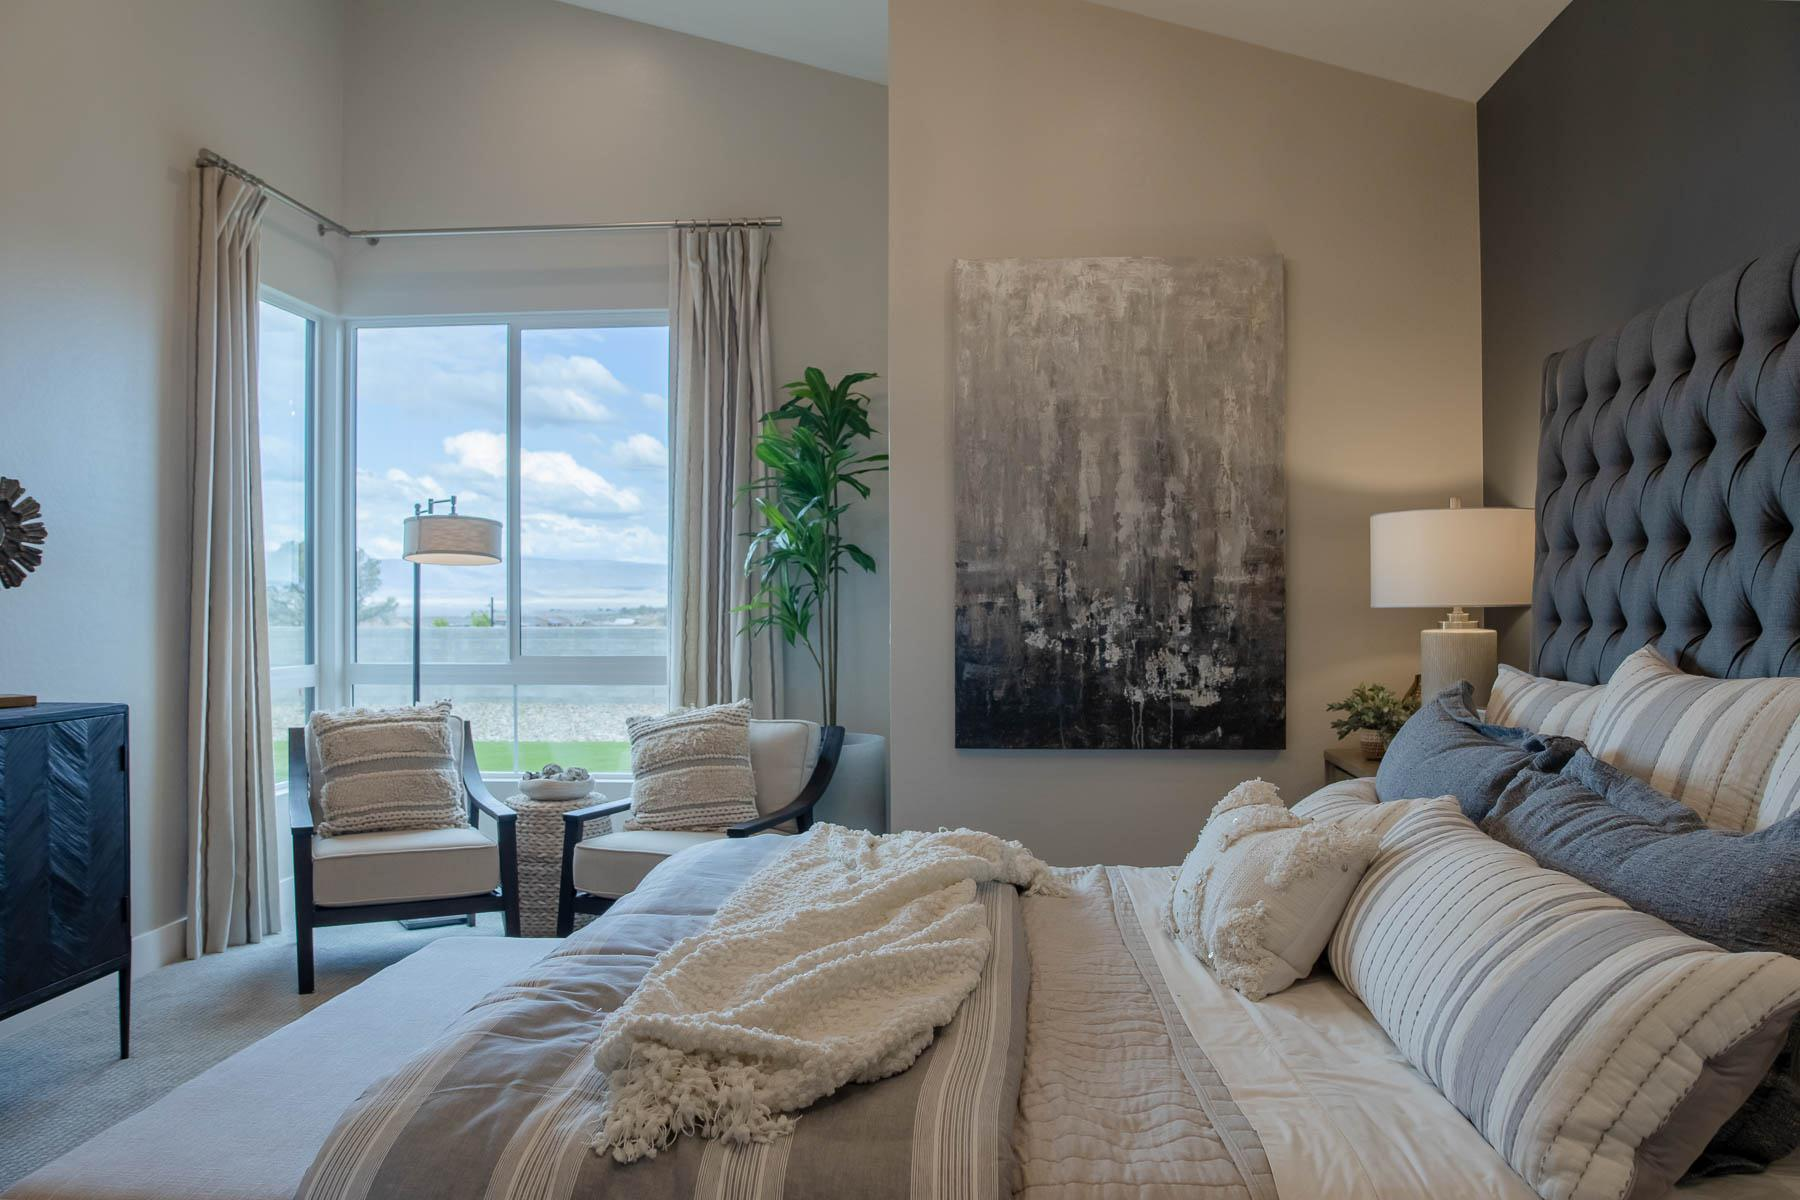 Bedroom featured in the J603 By Mandalay Homes in Prescott, AZ